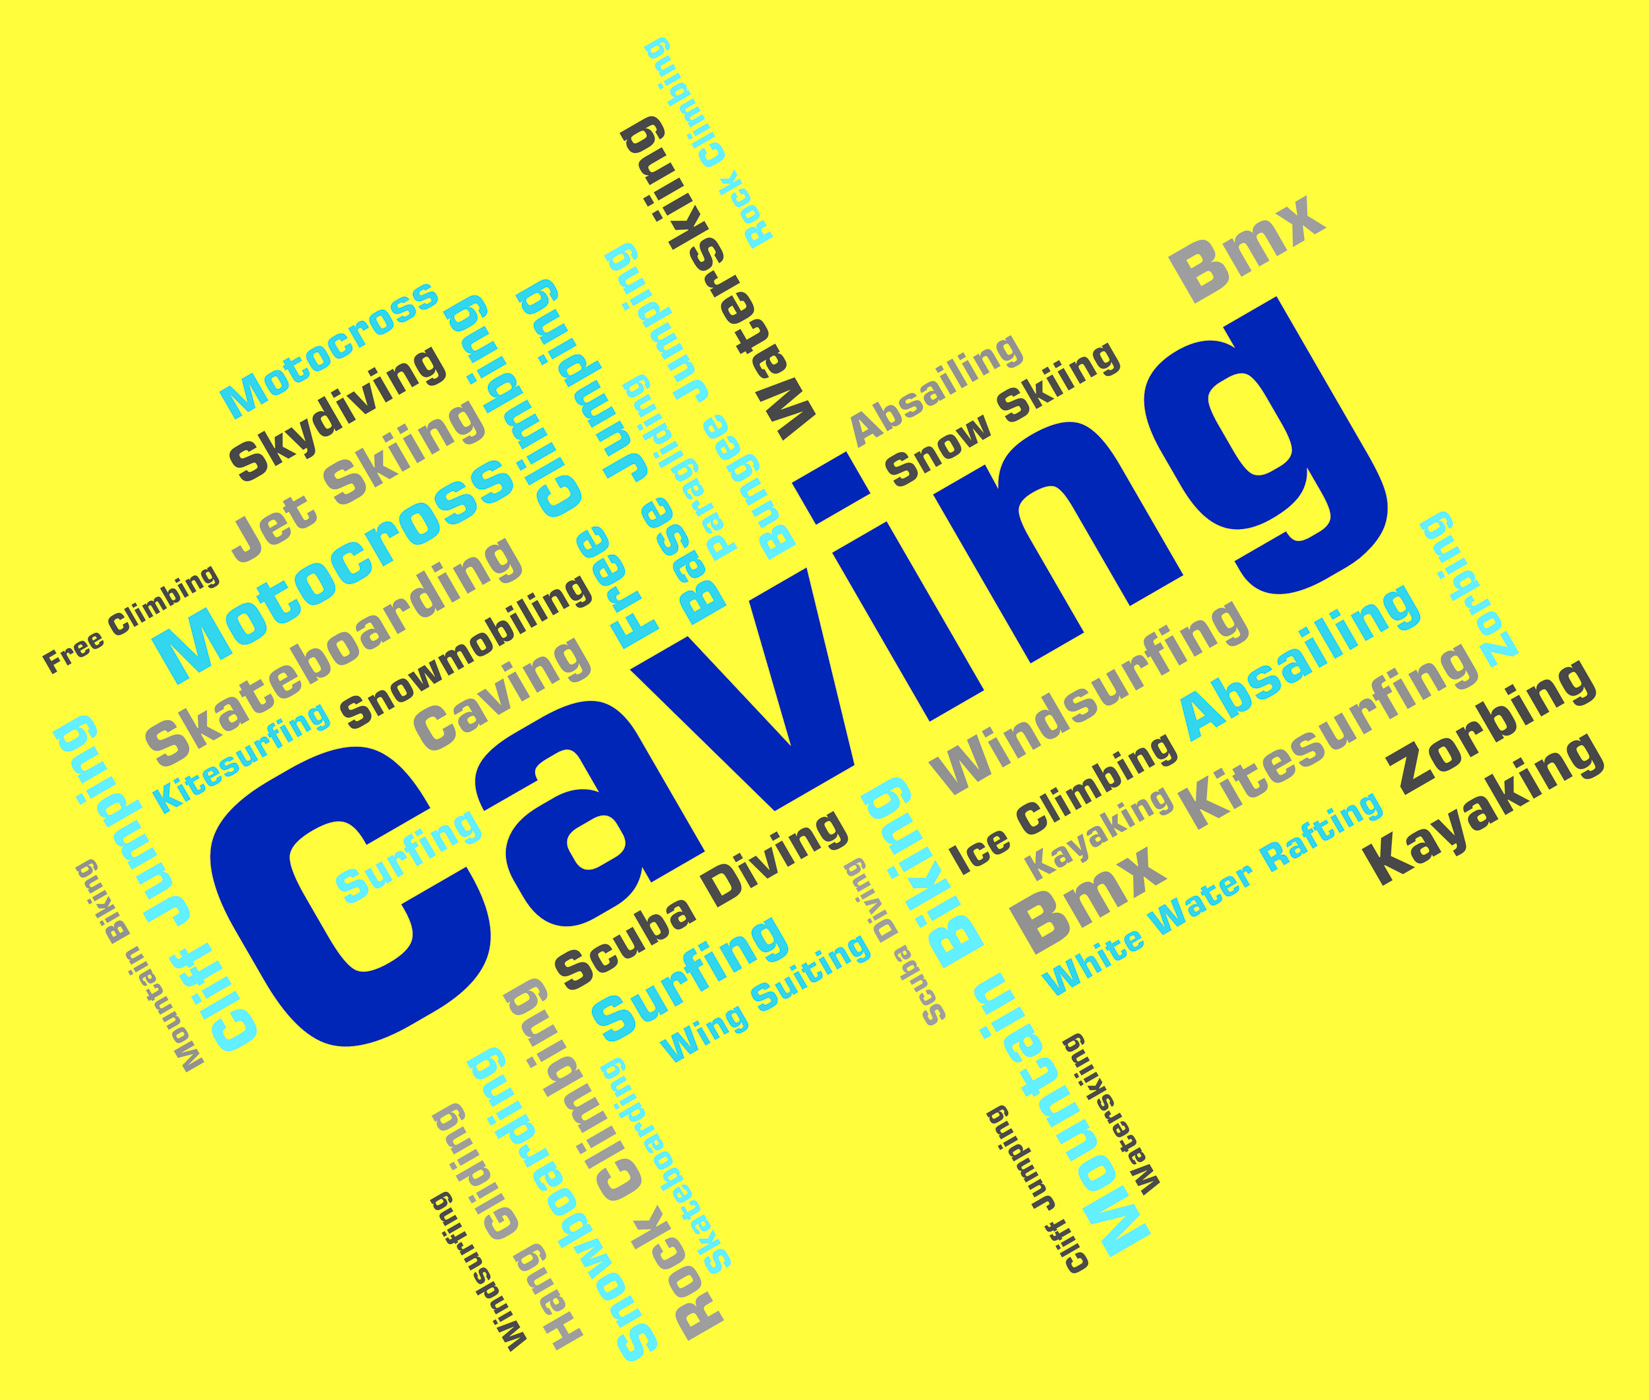 Caving words shows cave climbing and active photo